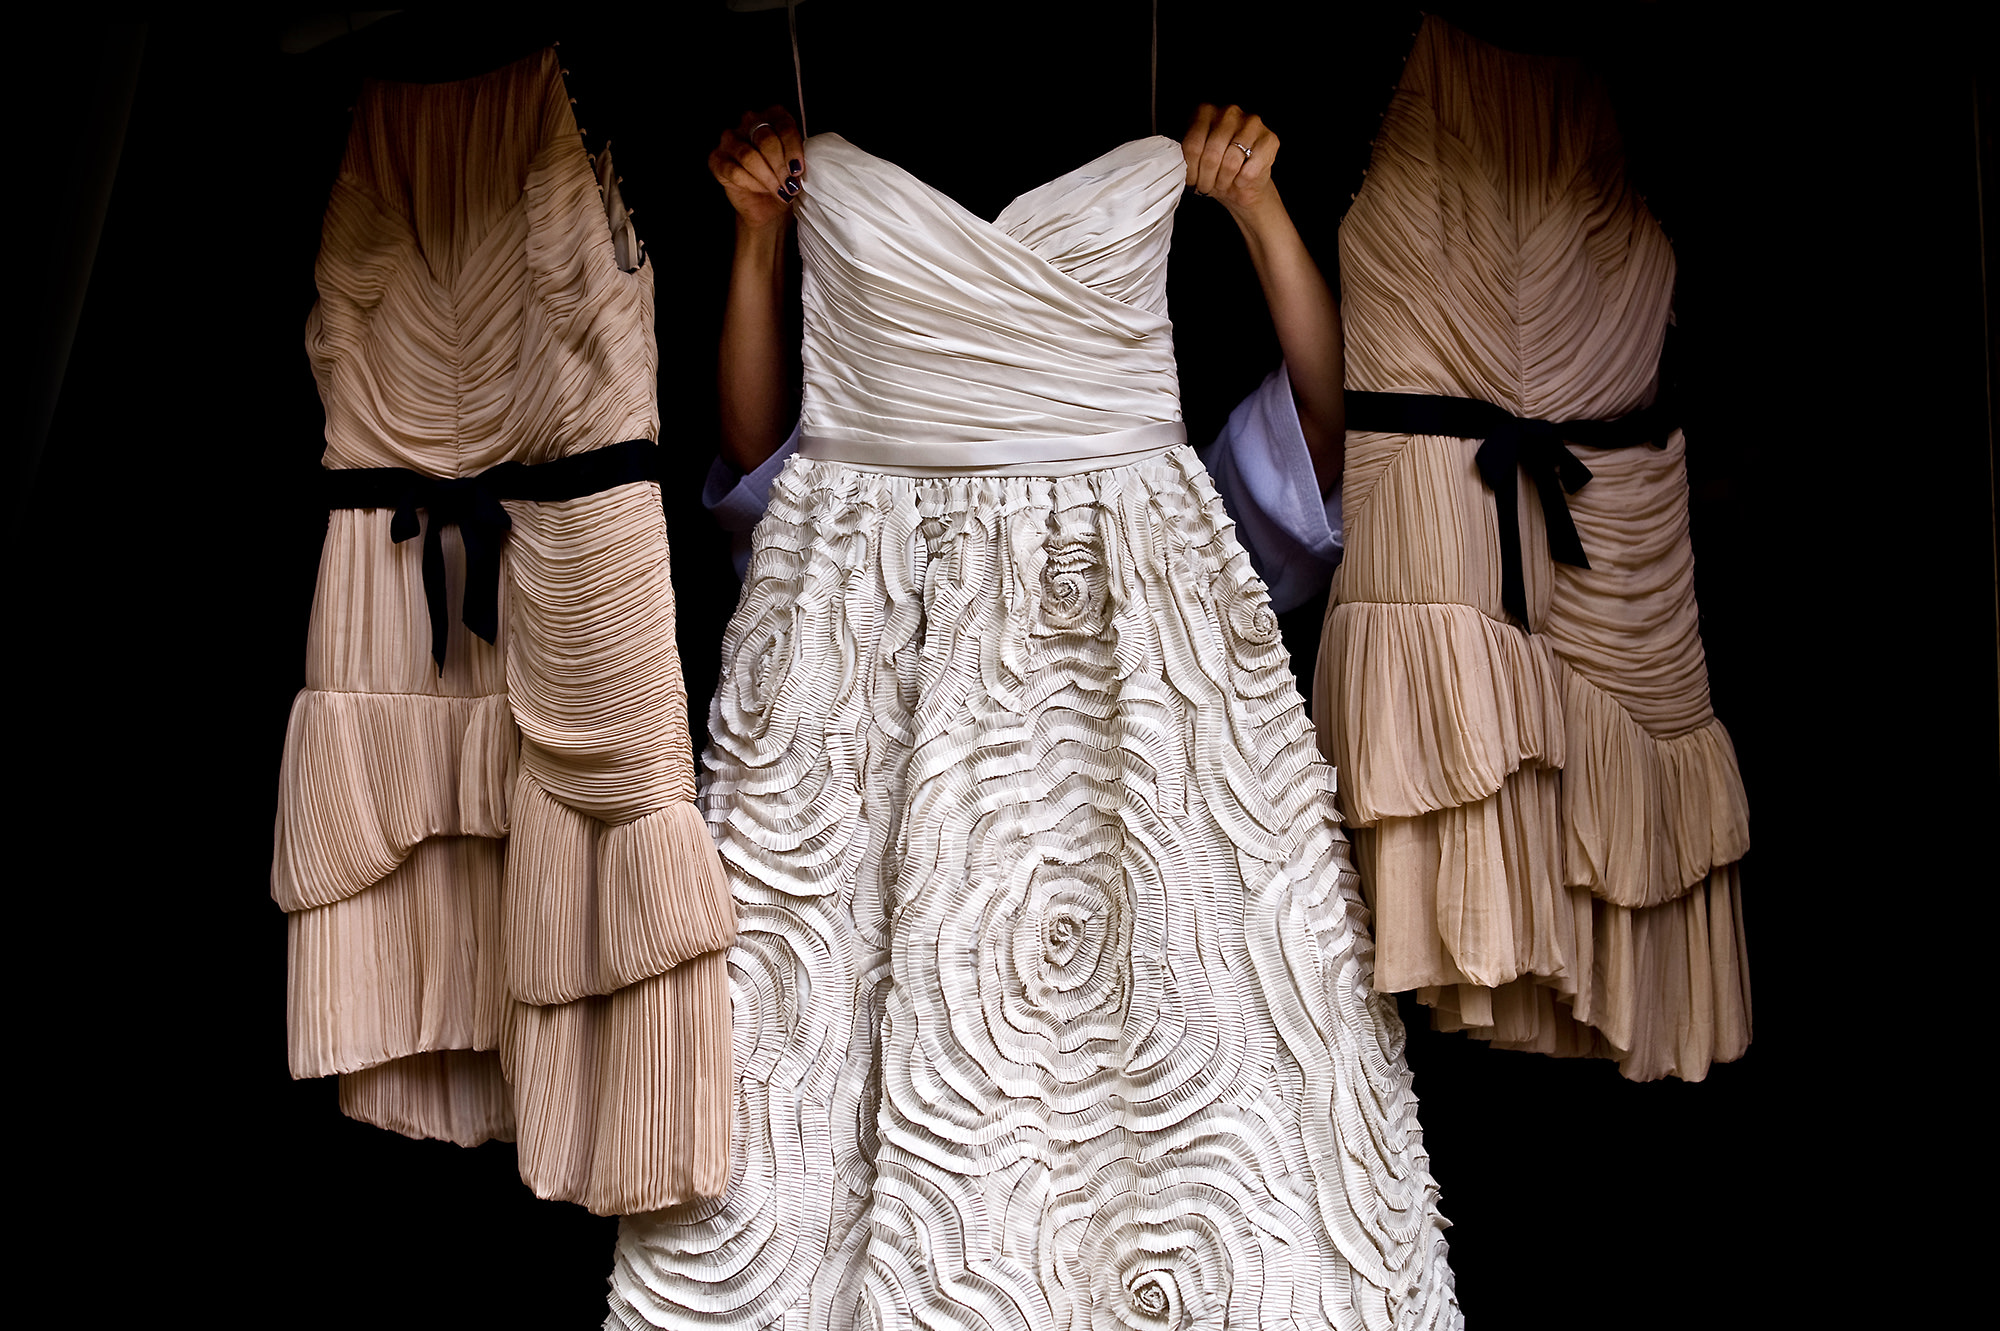 Ribbon ruched chiffon gown with taupe bridesmaid dresses  - Davina + Daniel